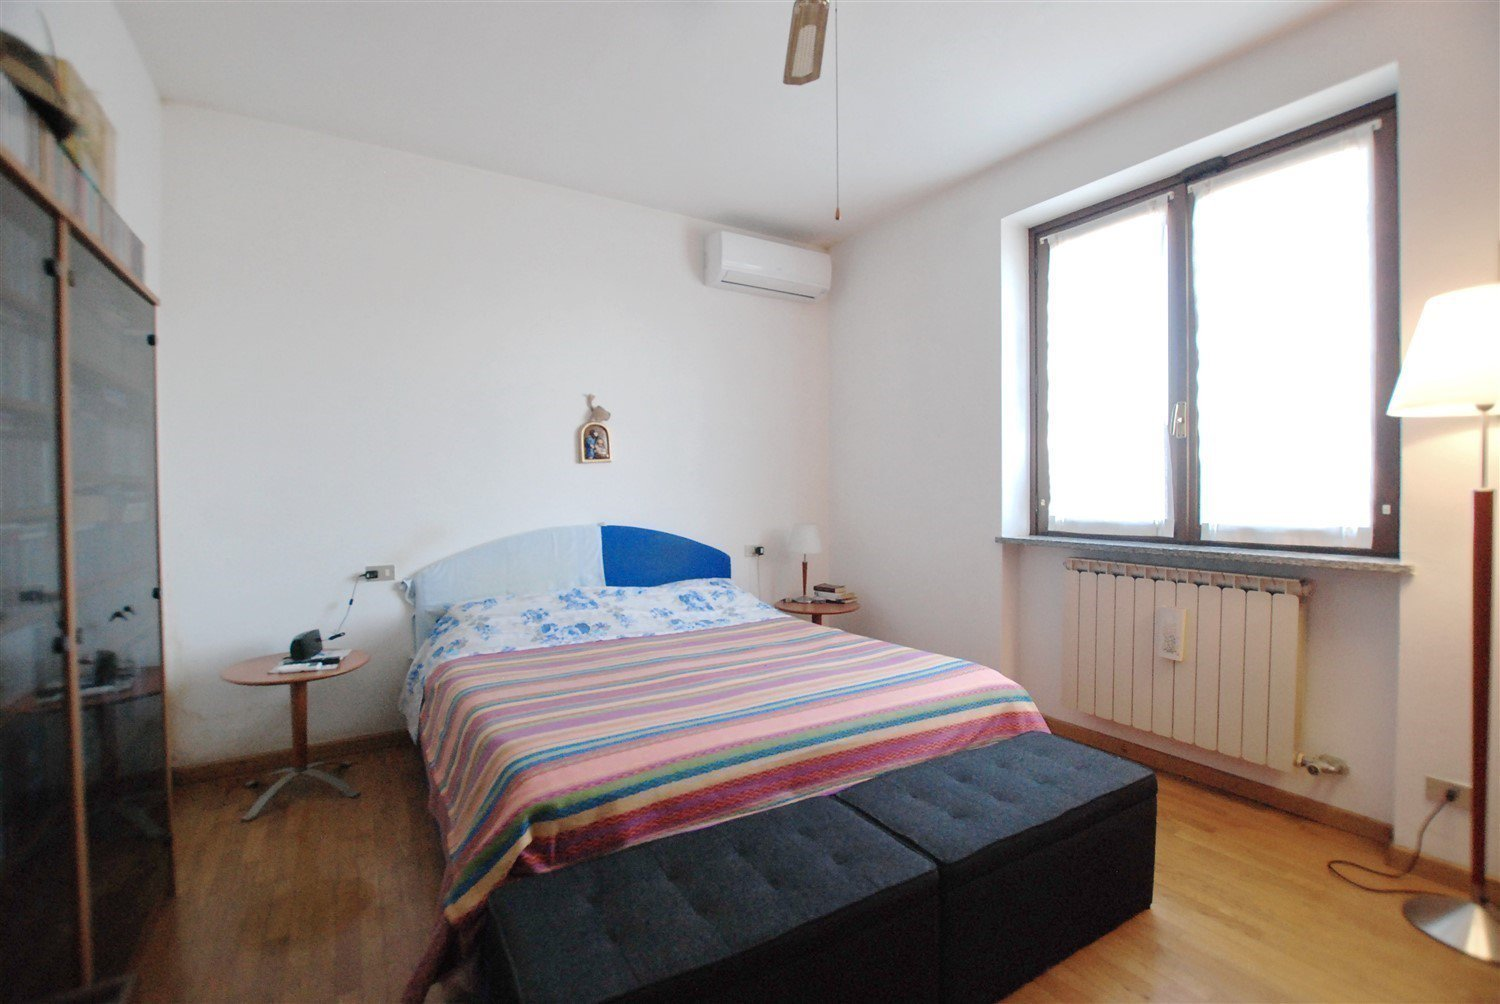 House for sale in Belgirate - bedroom